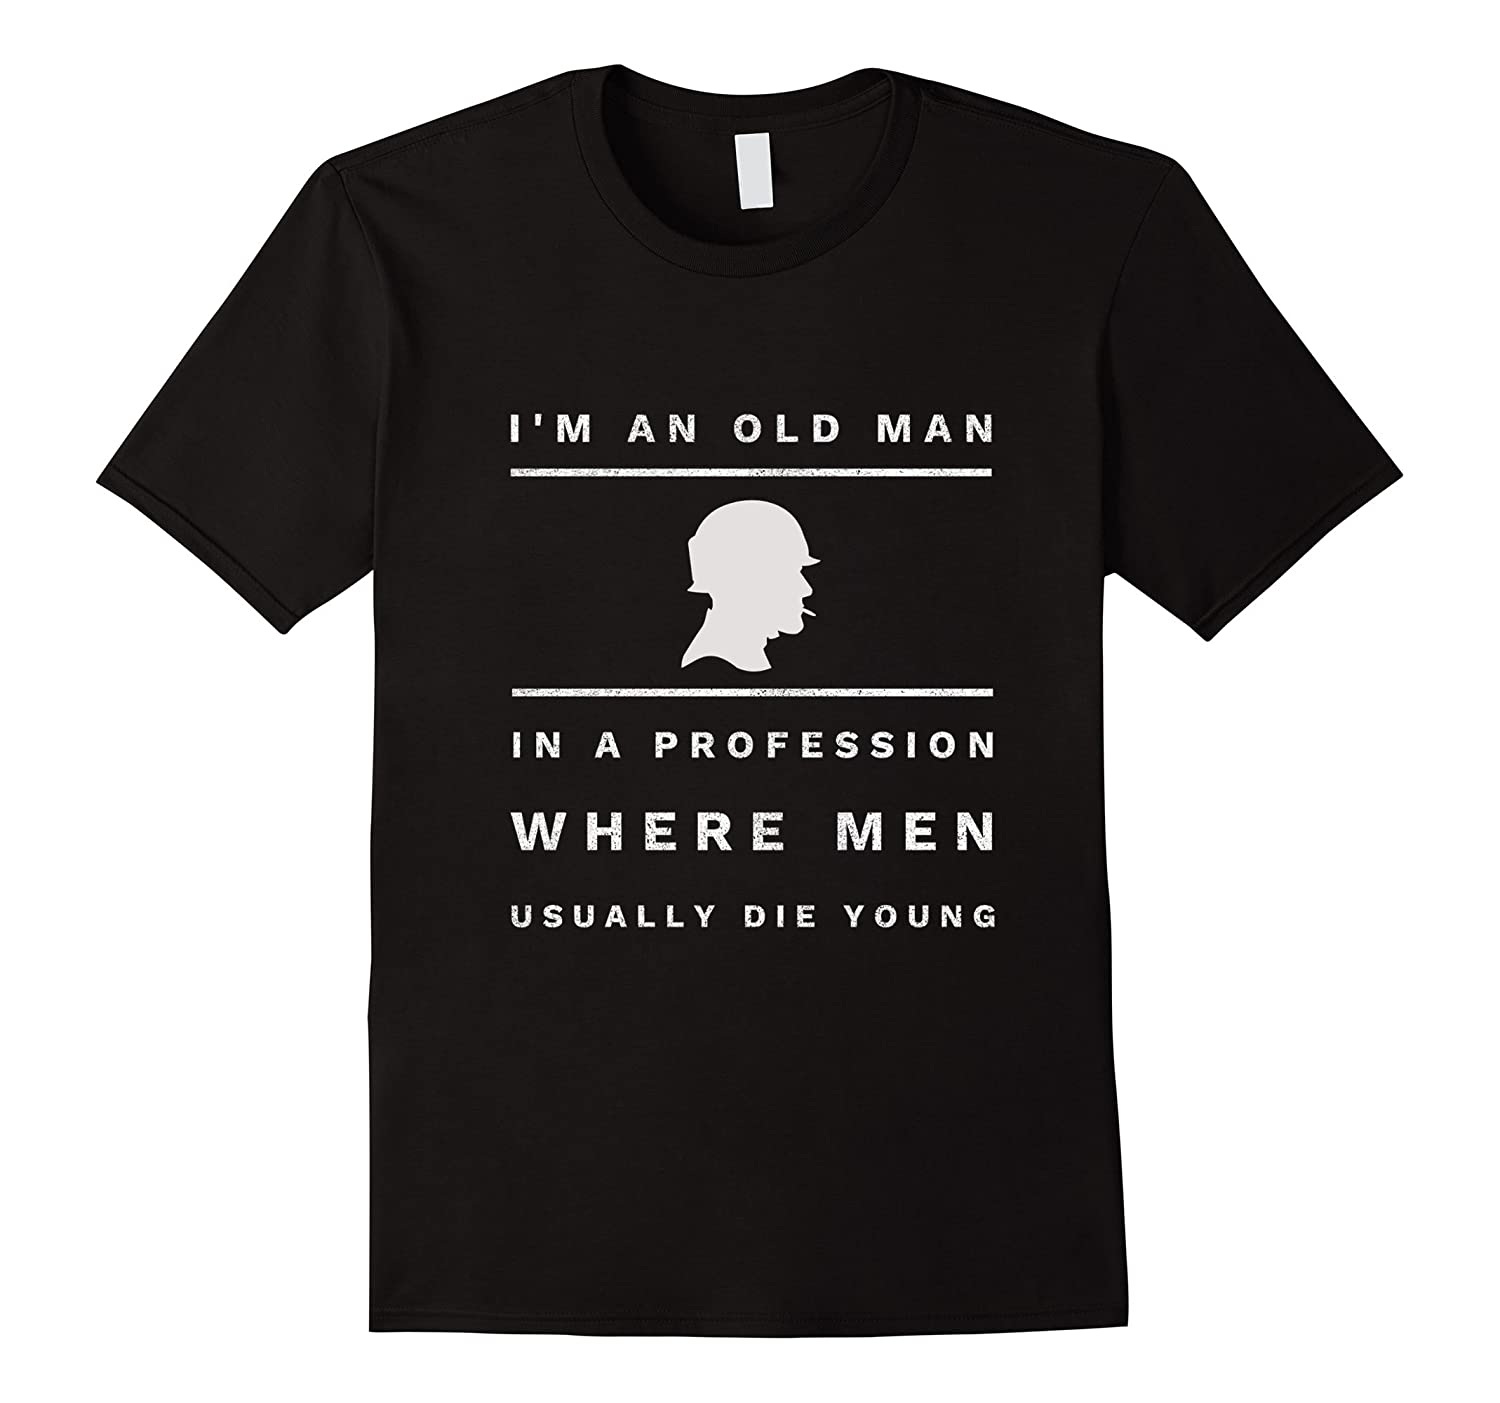 Mens I'm an old man in a profession we remember veterans t-shirt